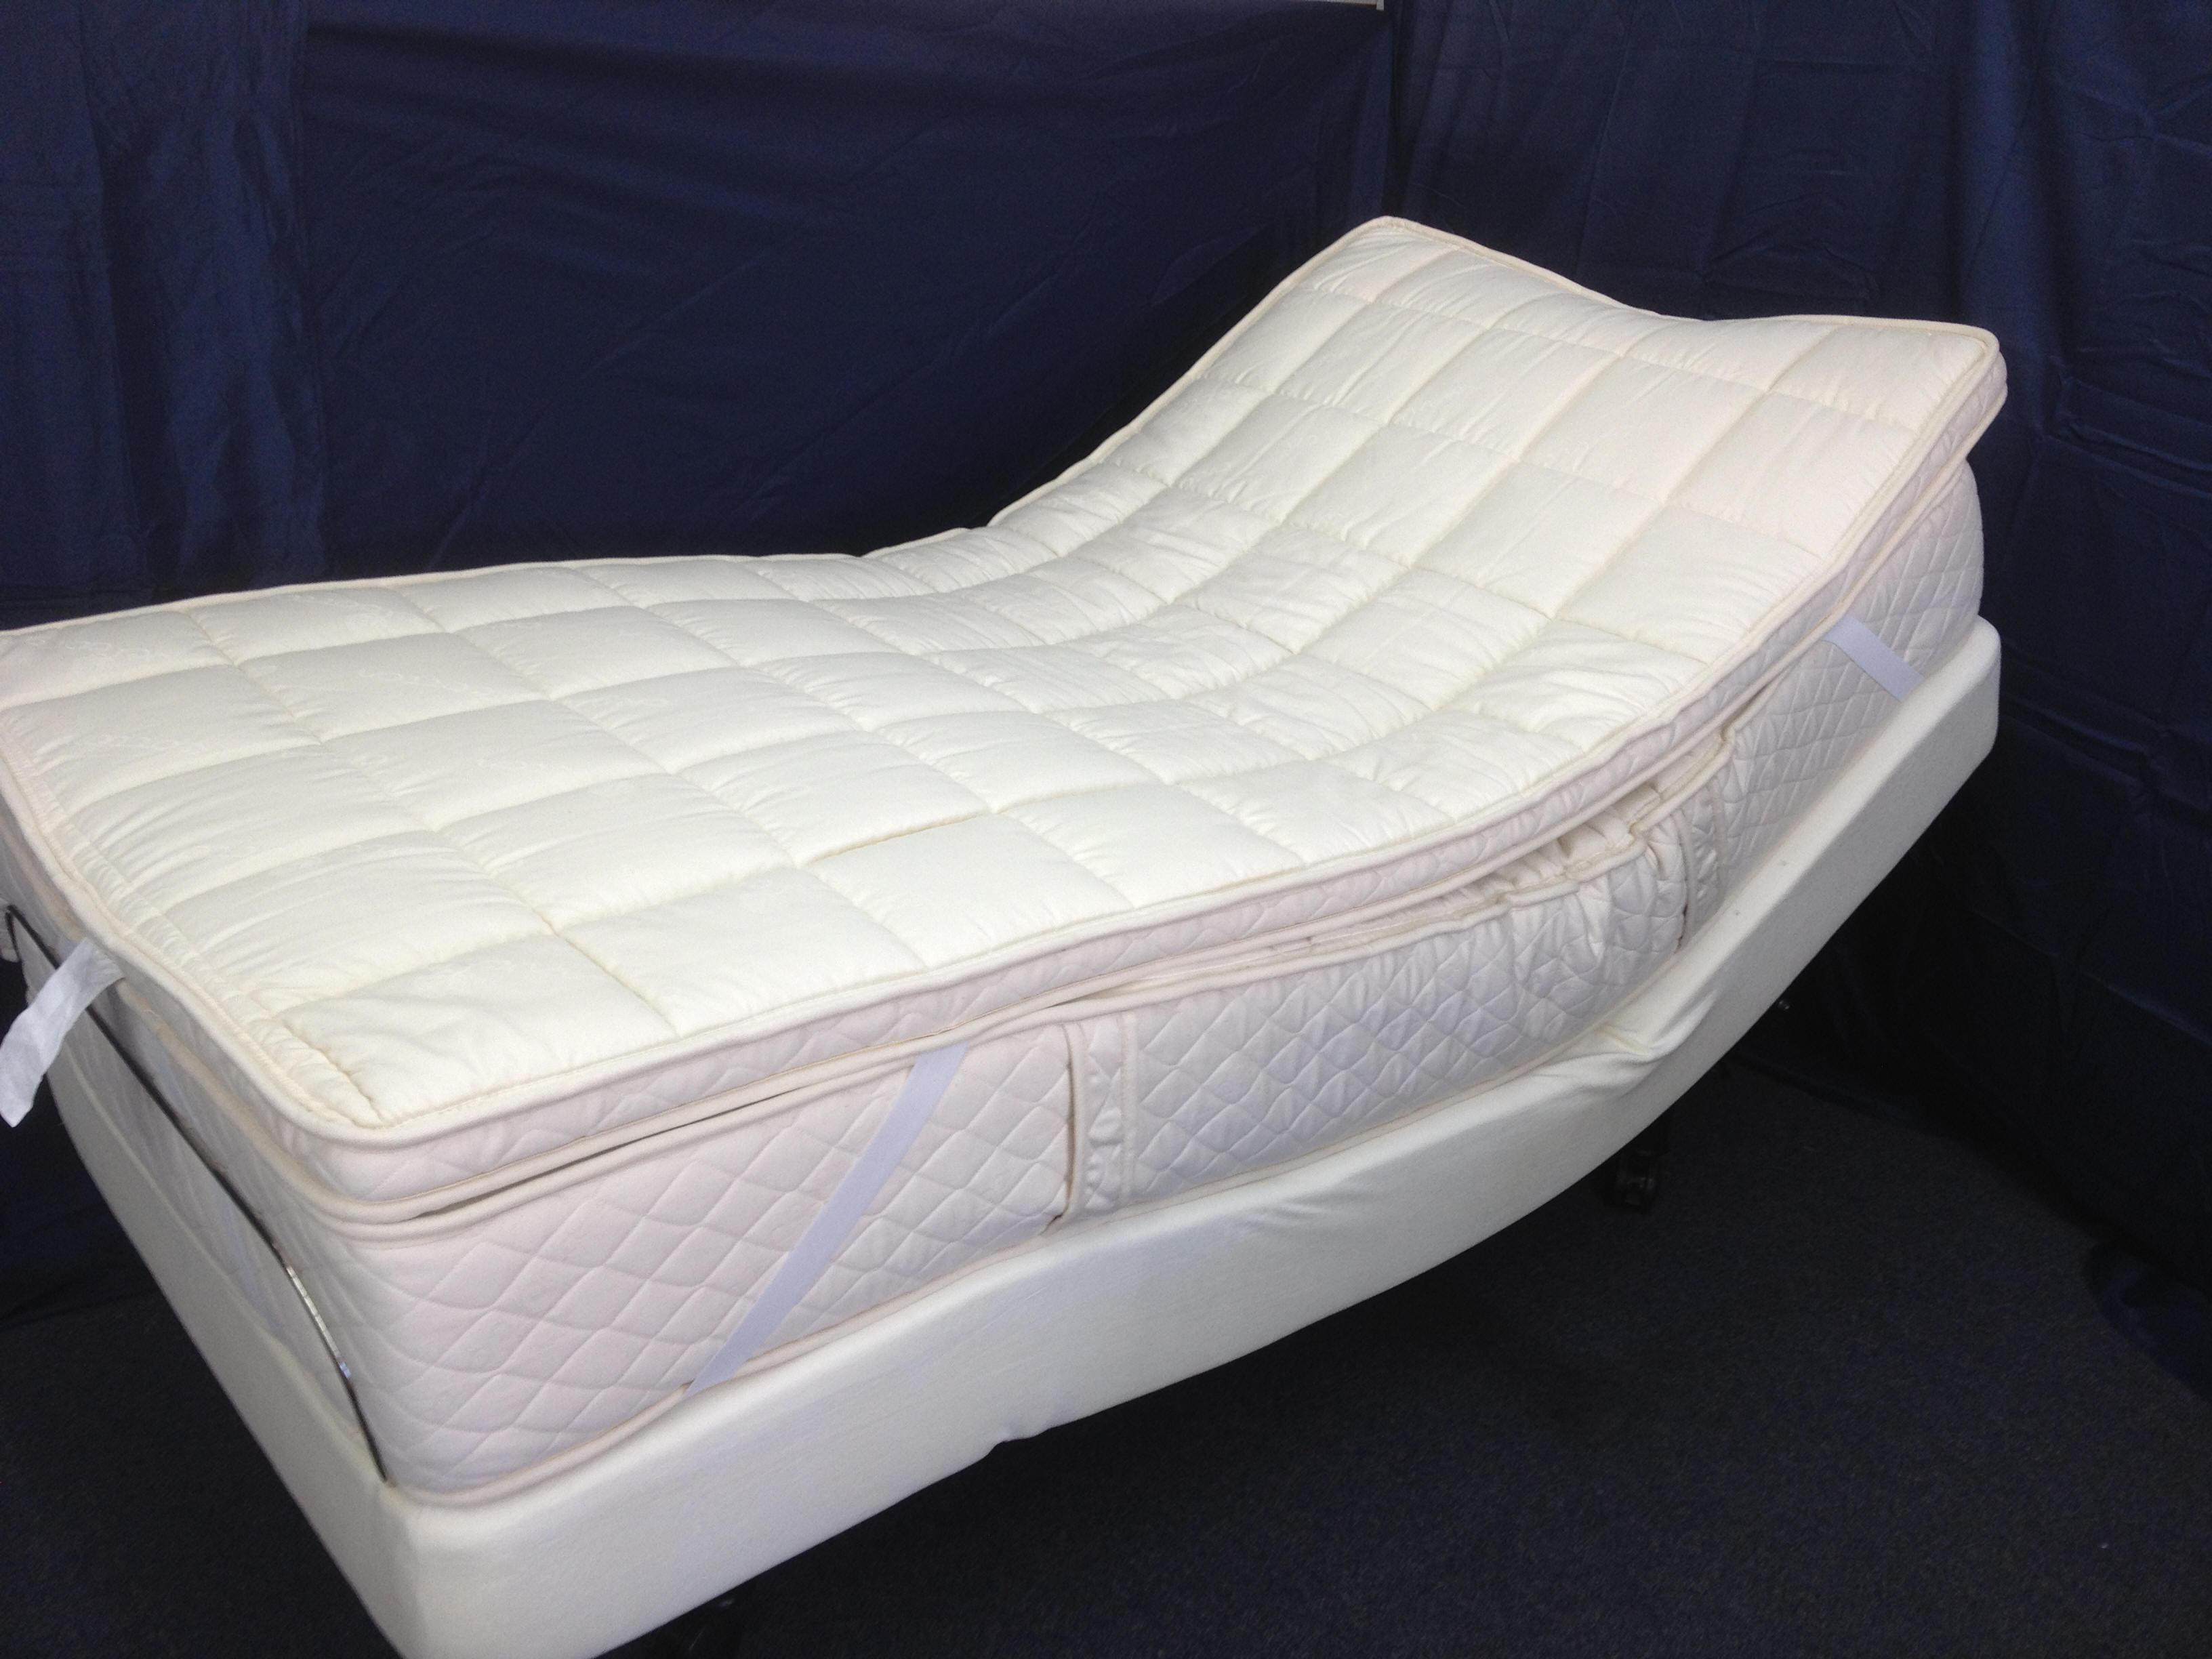 bedrooms memoflex product awaiting mattress image bend factory